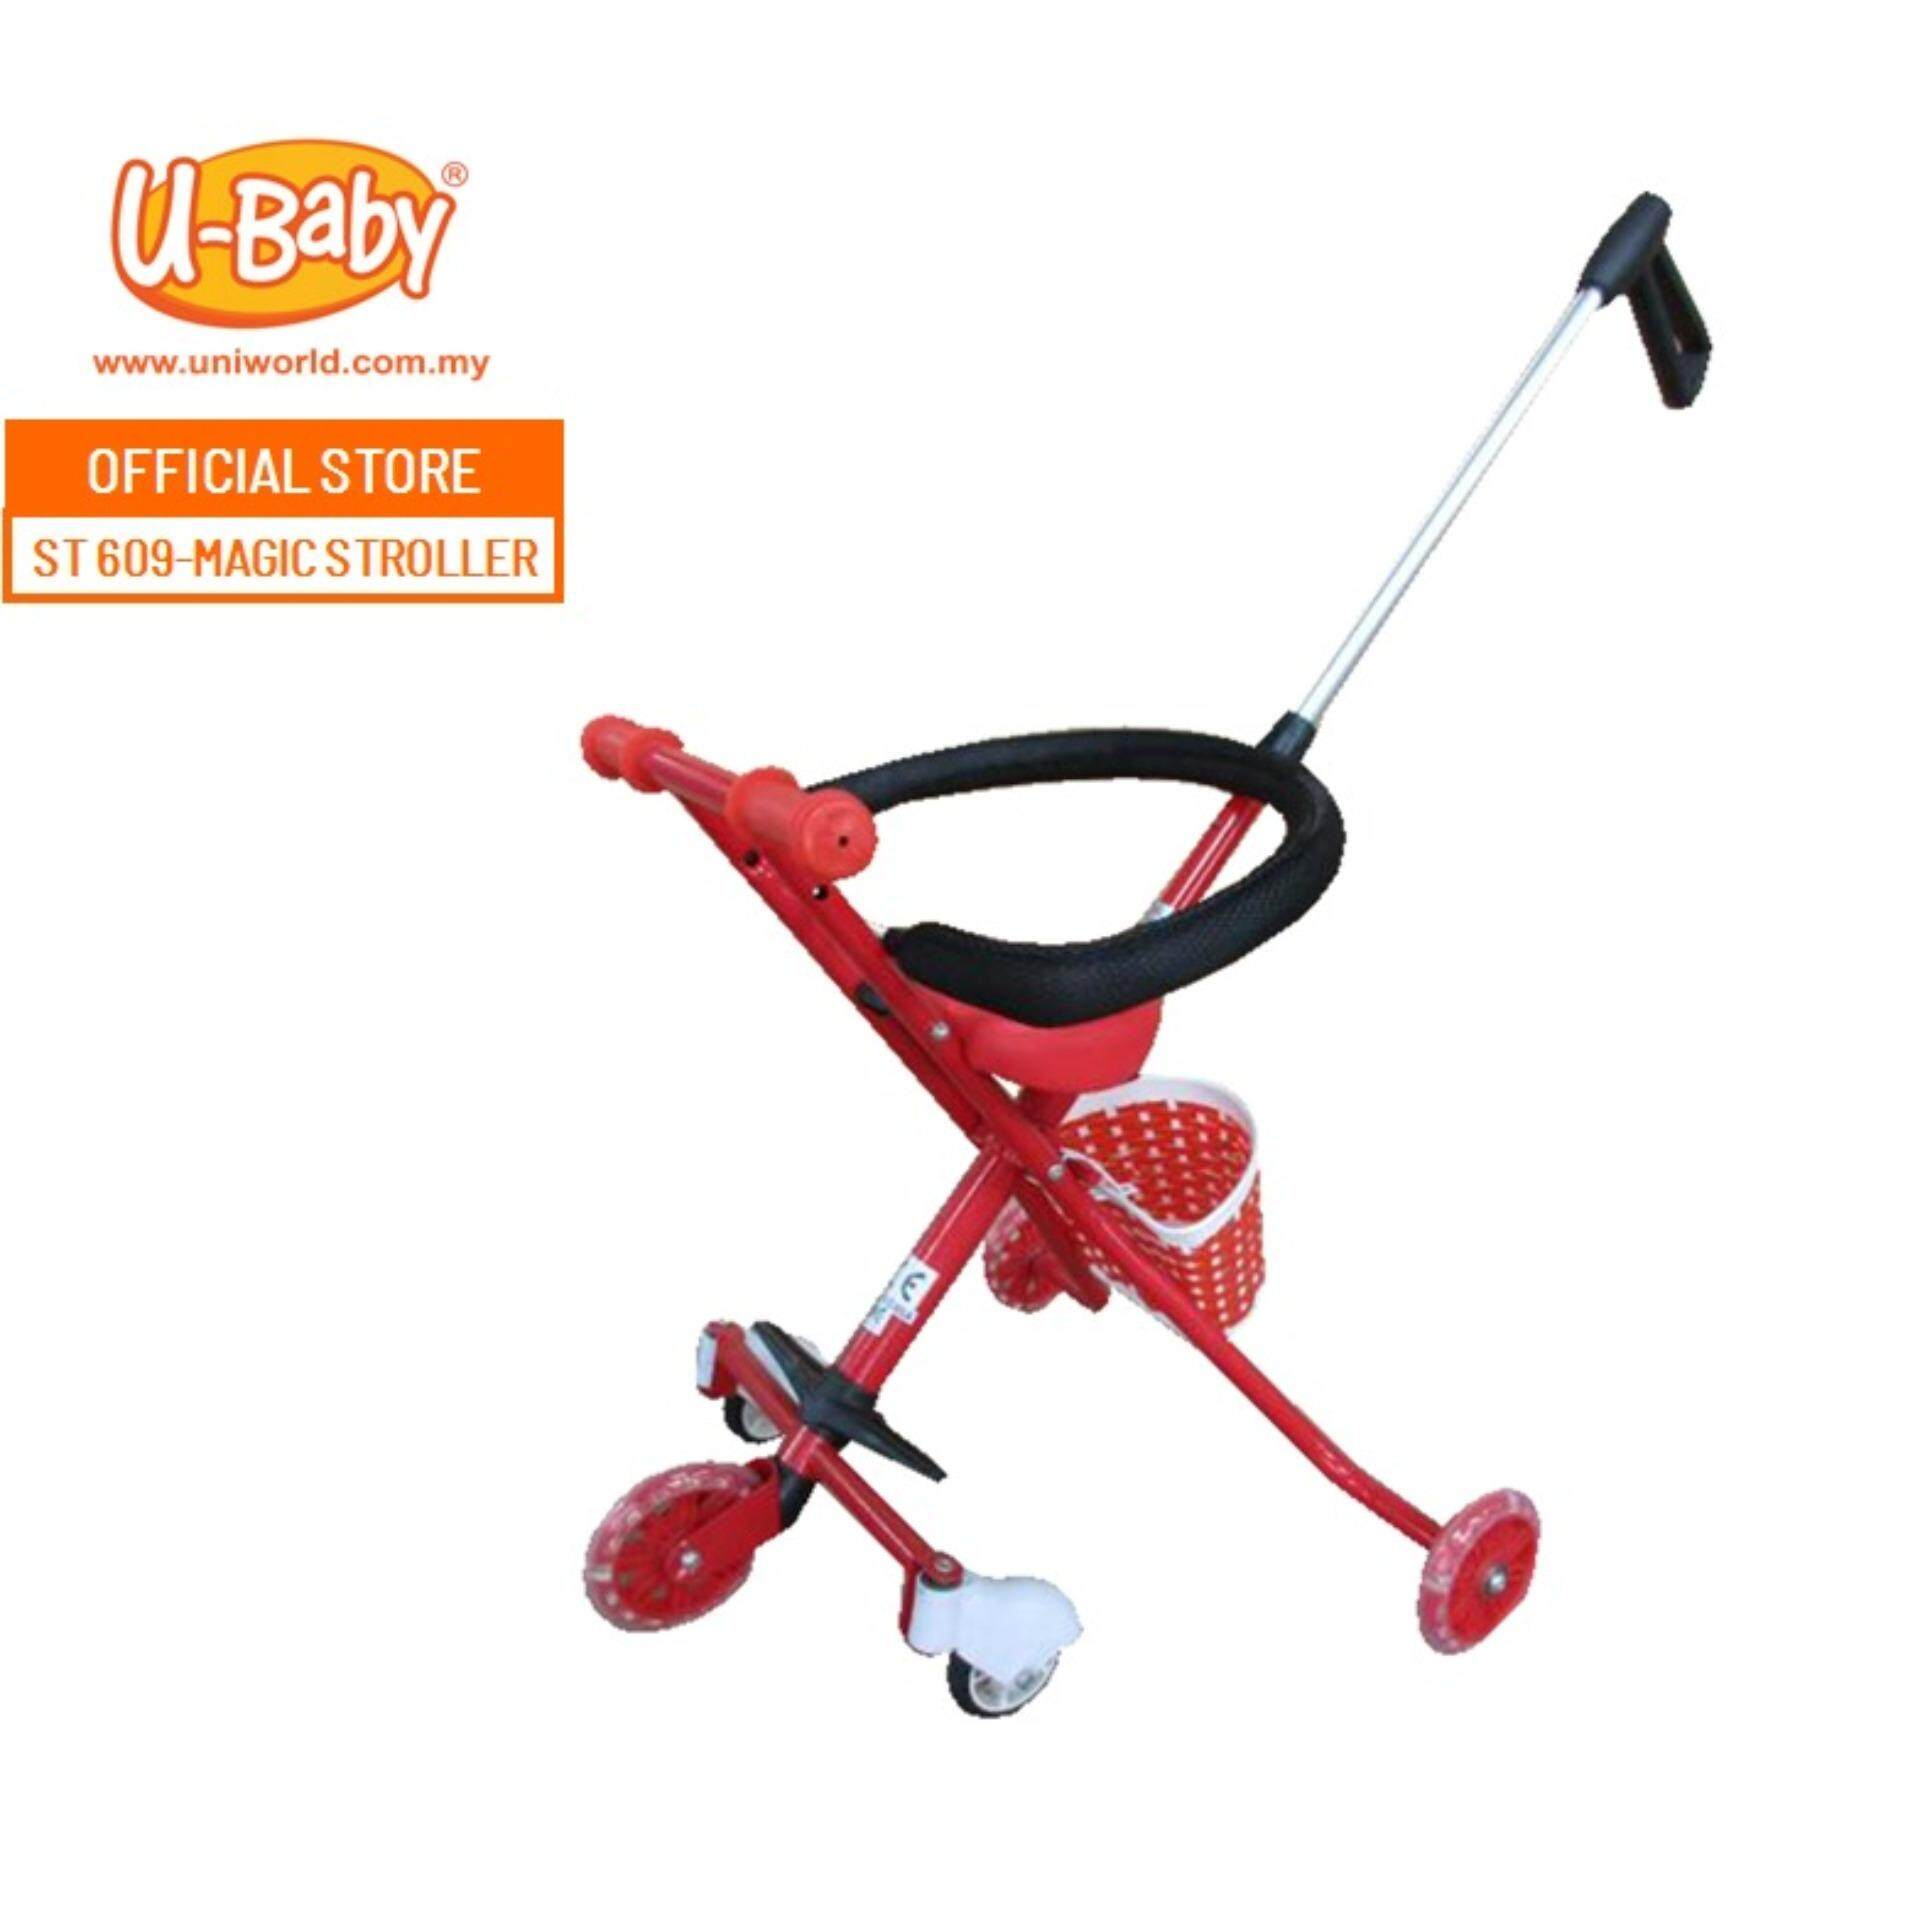 Mima Xari Stroller Harga U Baby 5 Wheels Magic Stroller St 609 Red